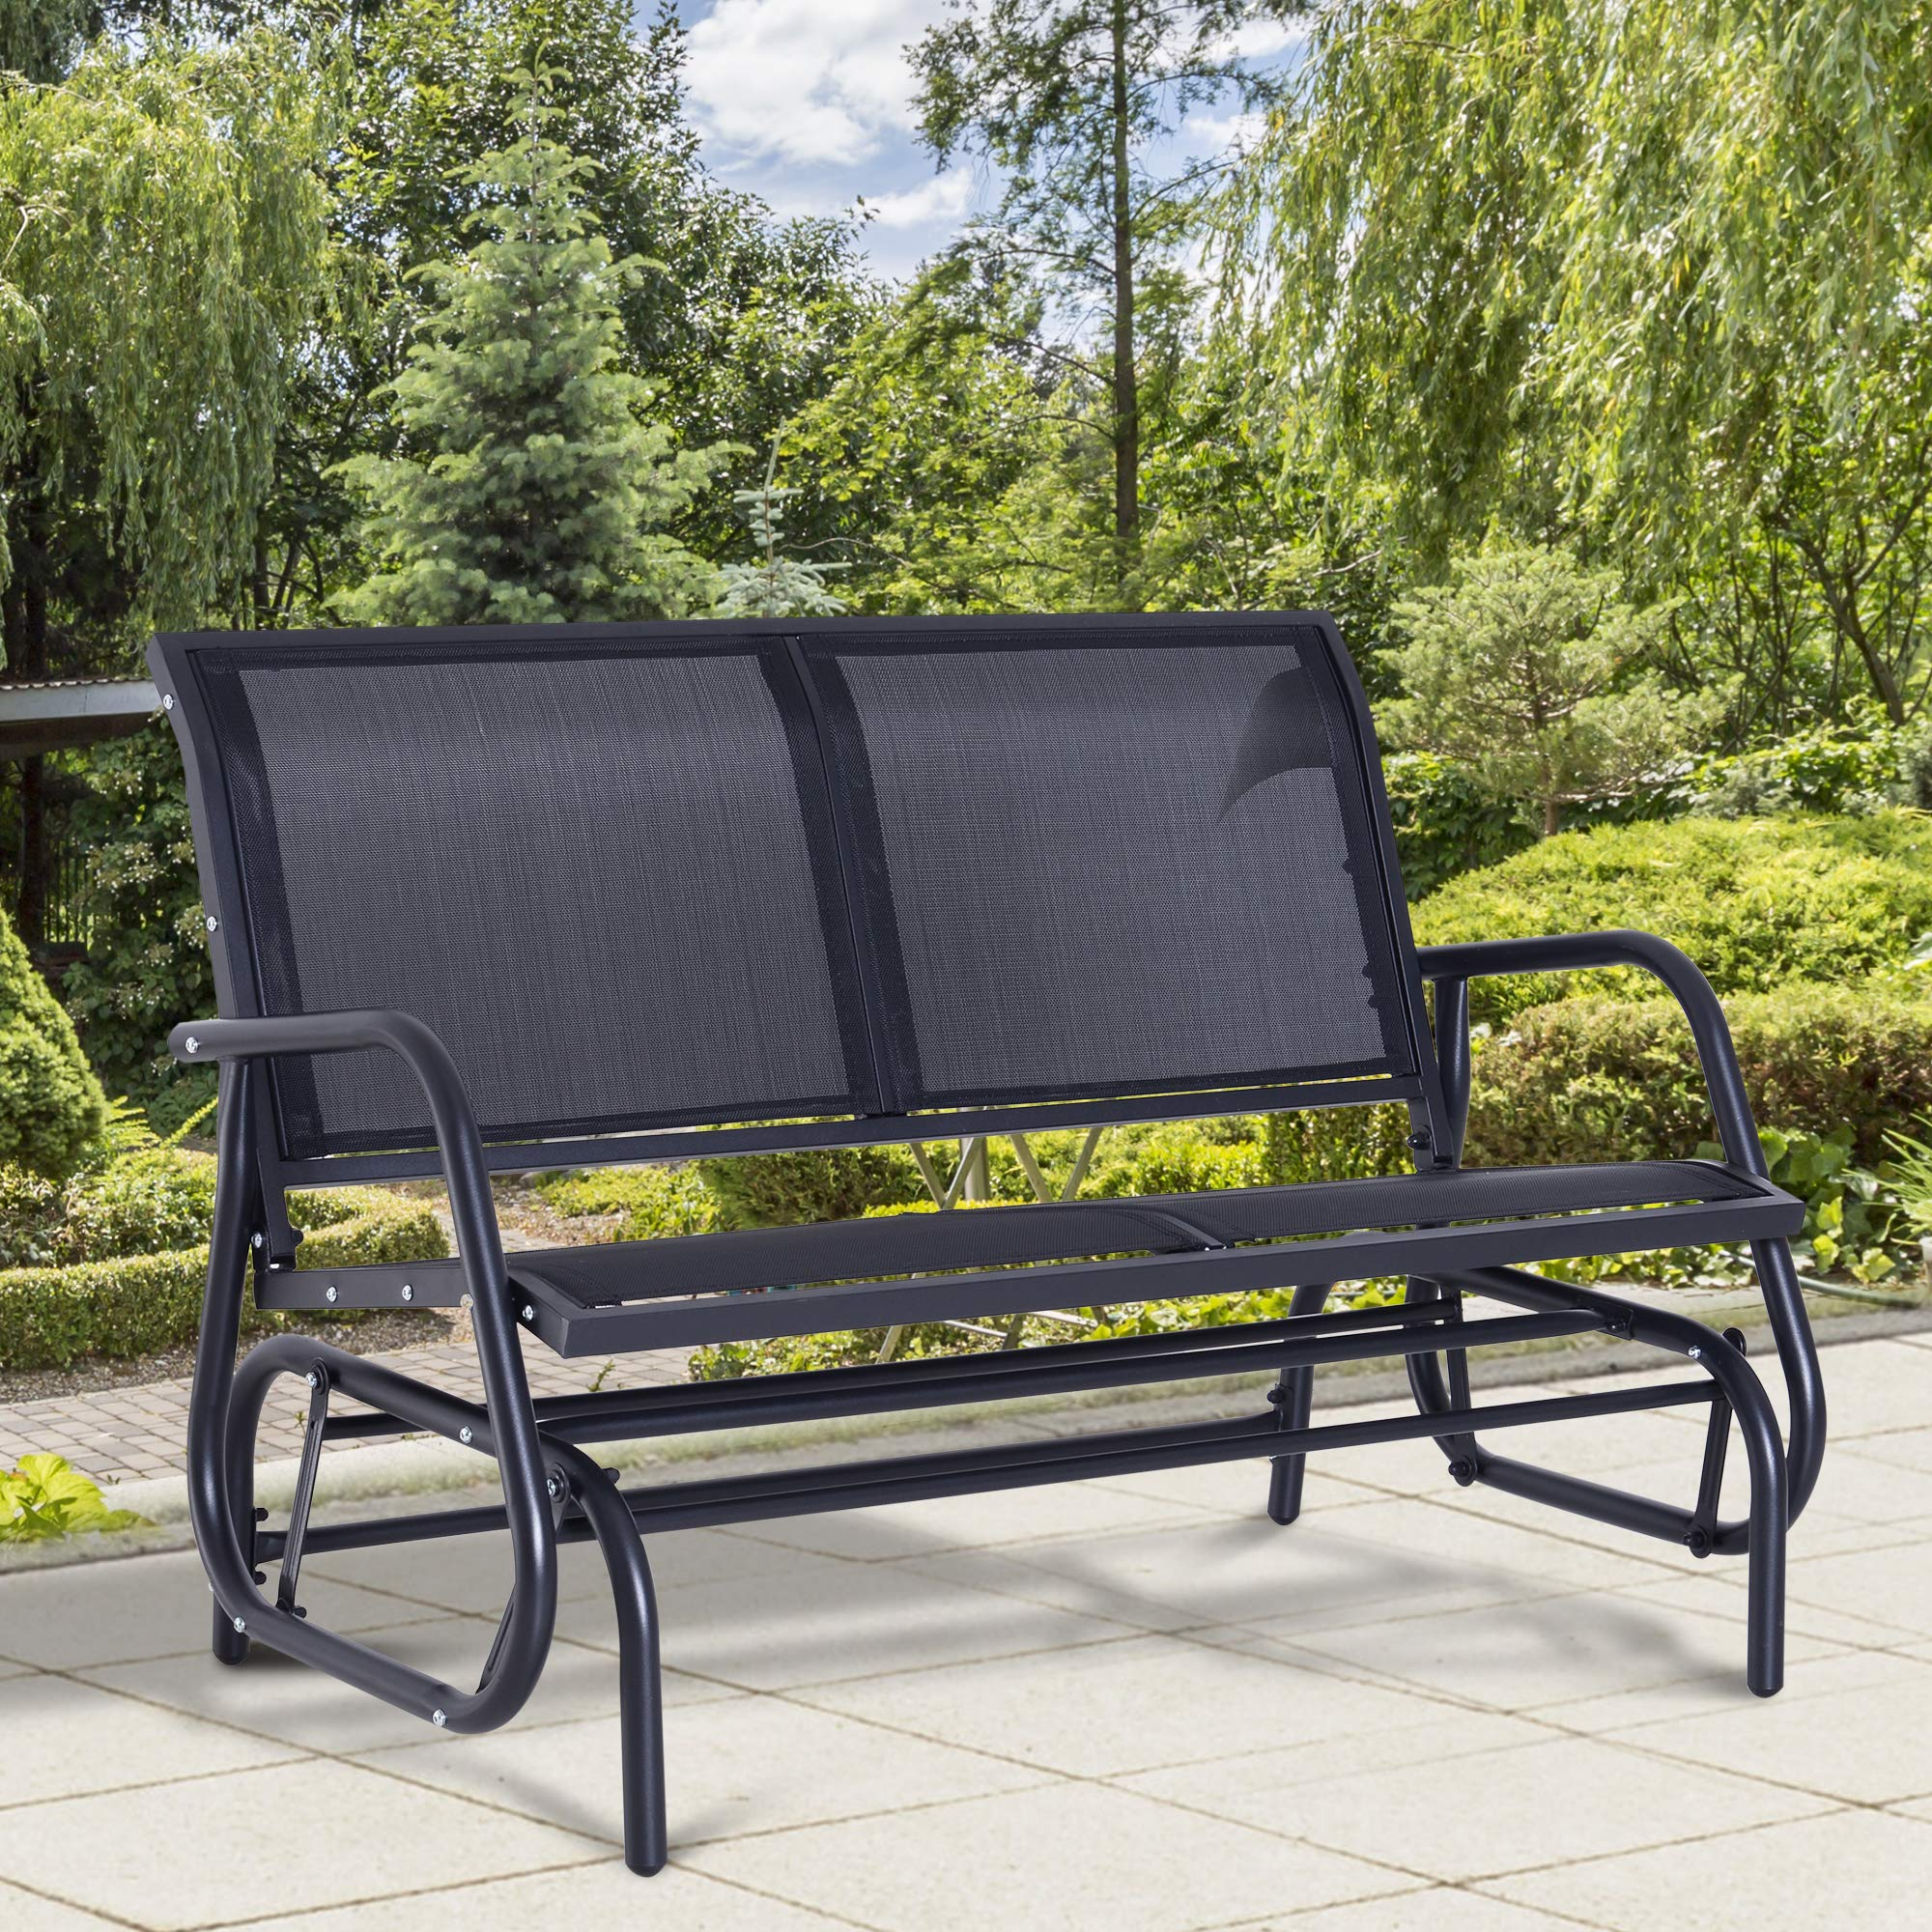 Outsunny 48'' Outdoor Patio Swing Glider Bench Chair - Dark Gray by Outsunny (Image #1)